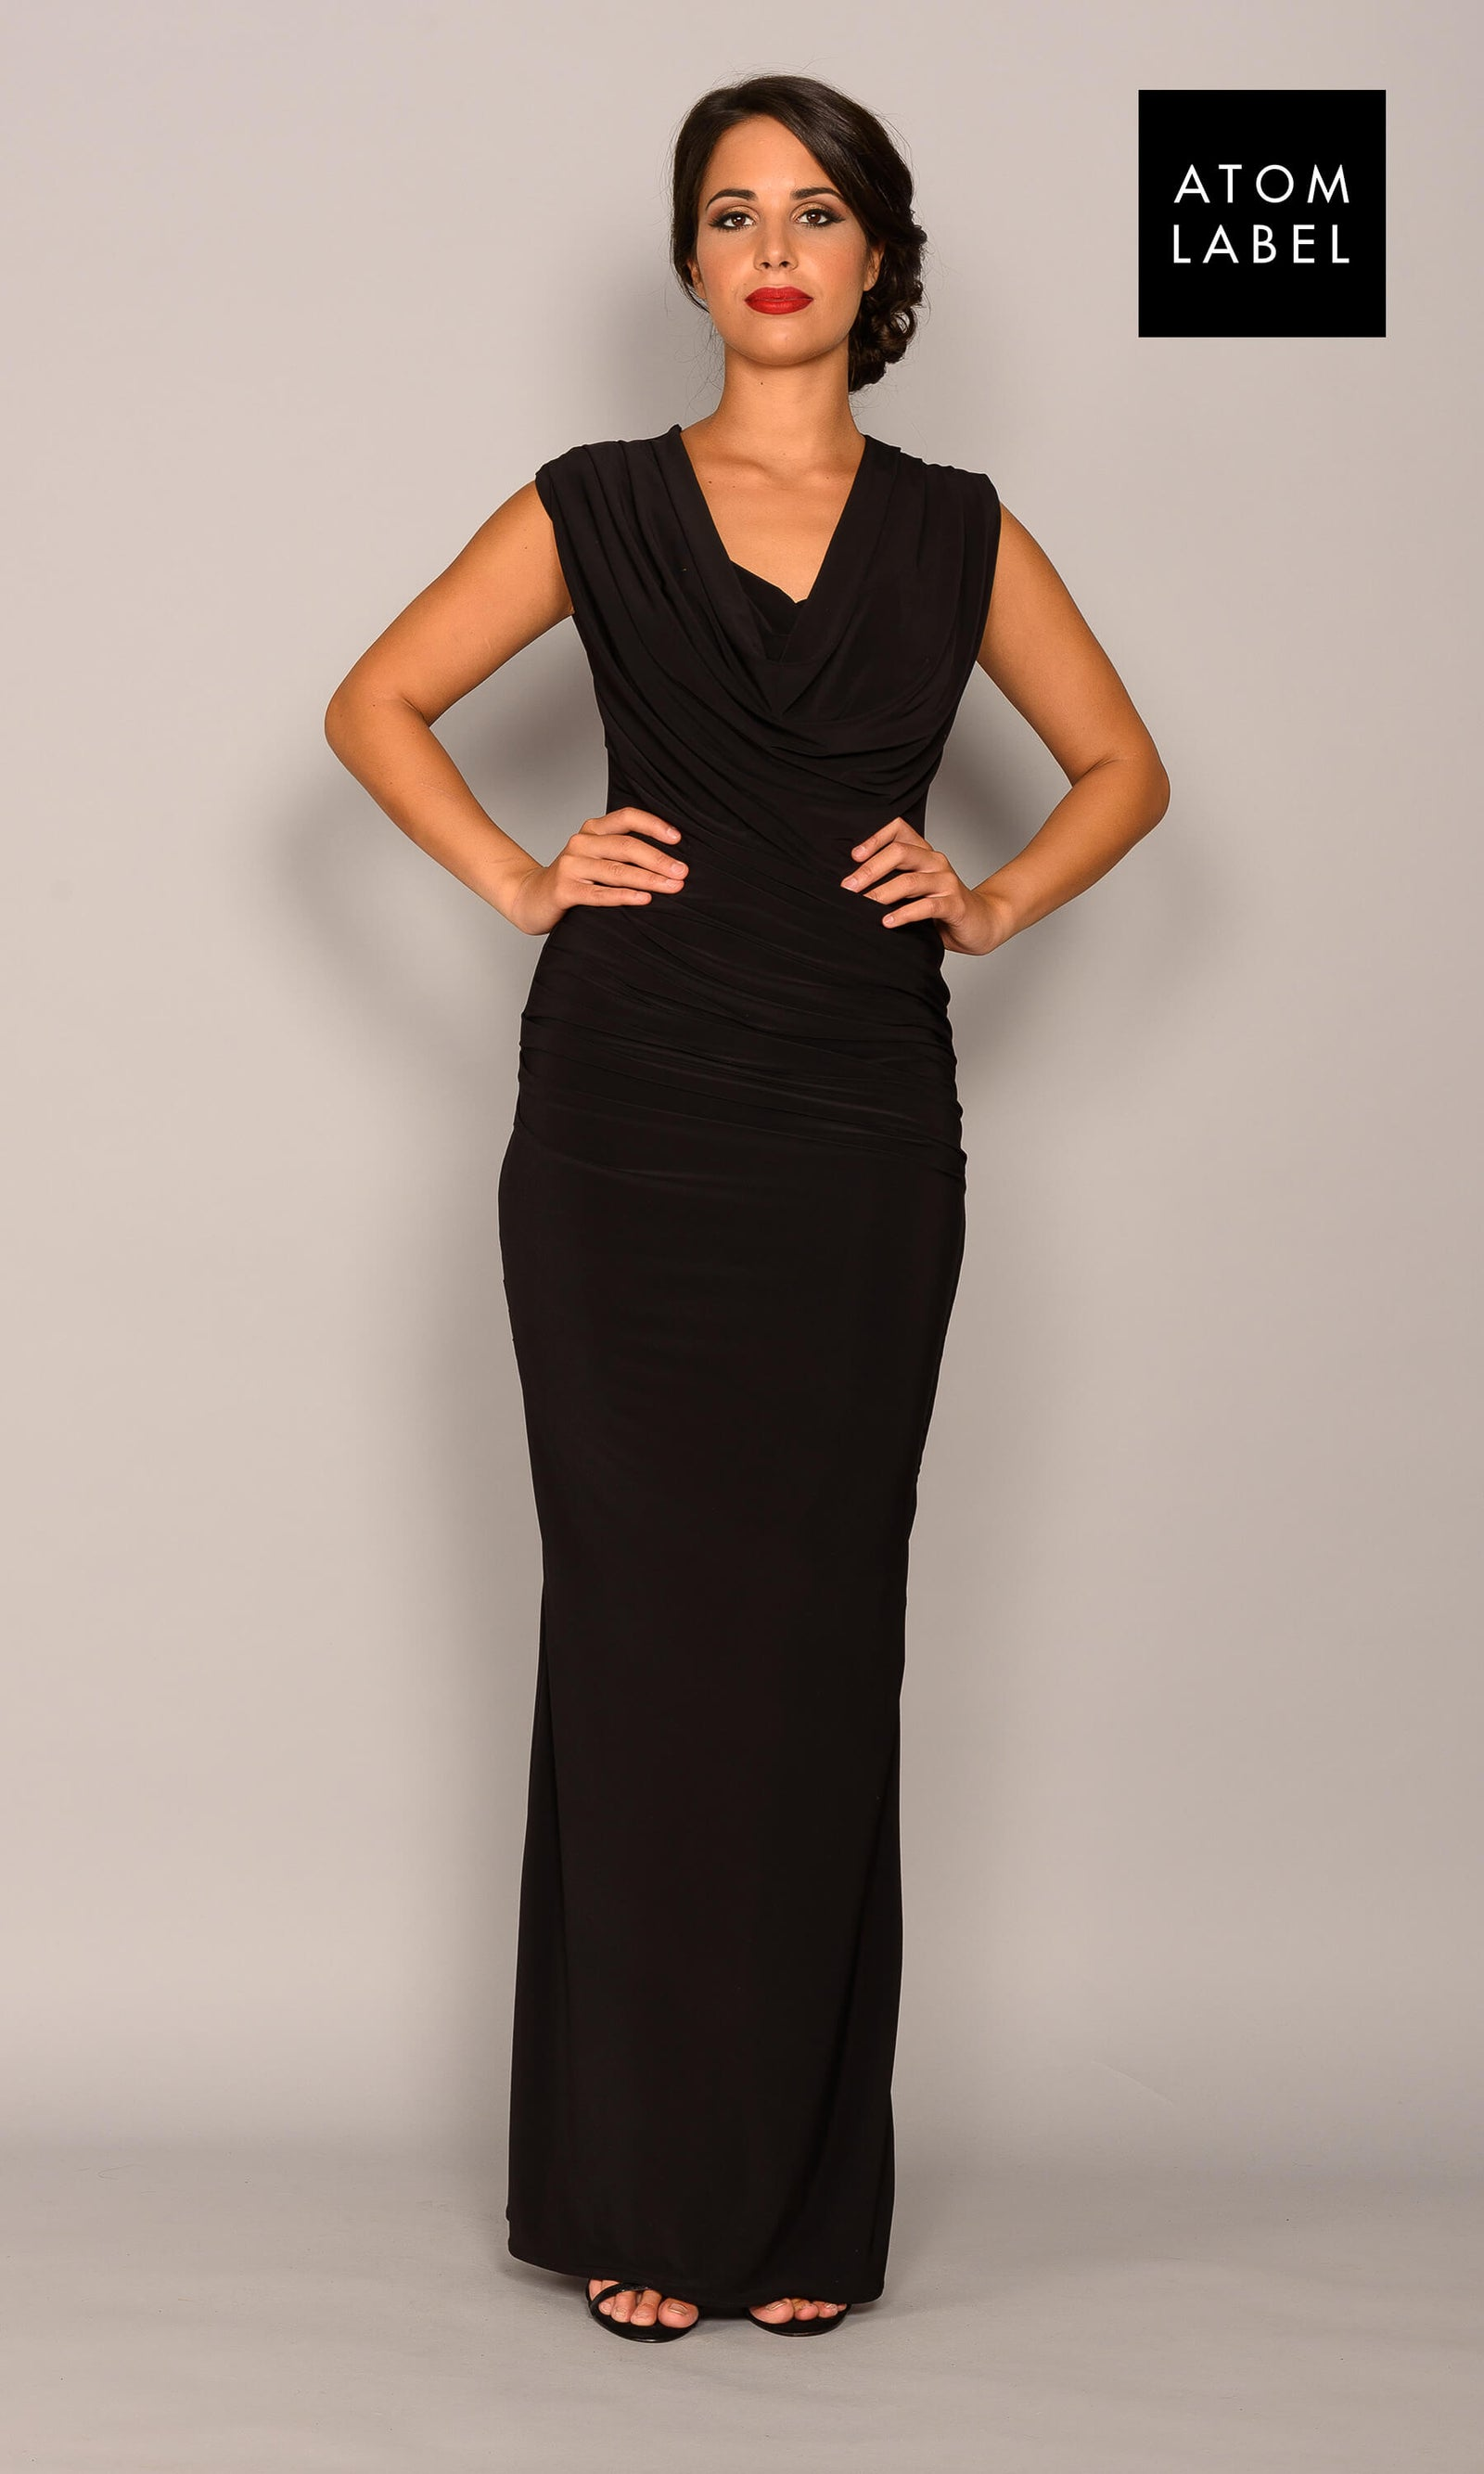 Aluminium Black Atom Label Jersey Evening Dress - Fab Frocks